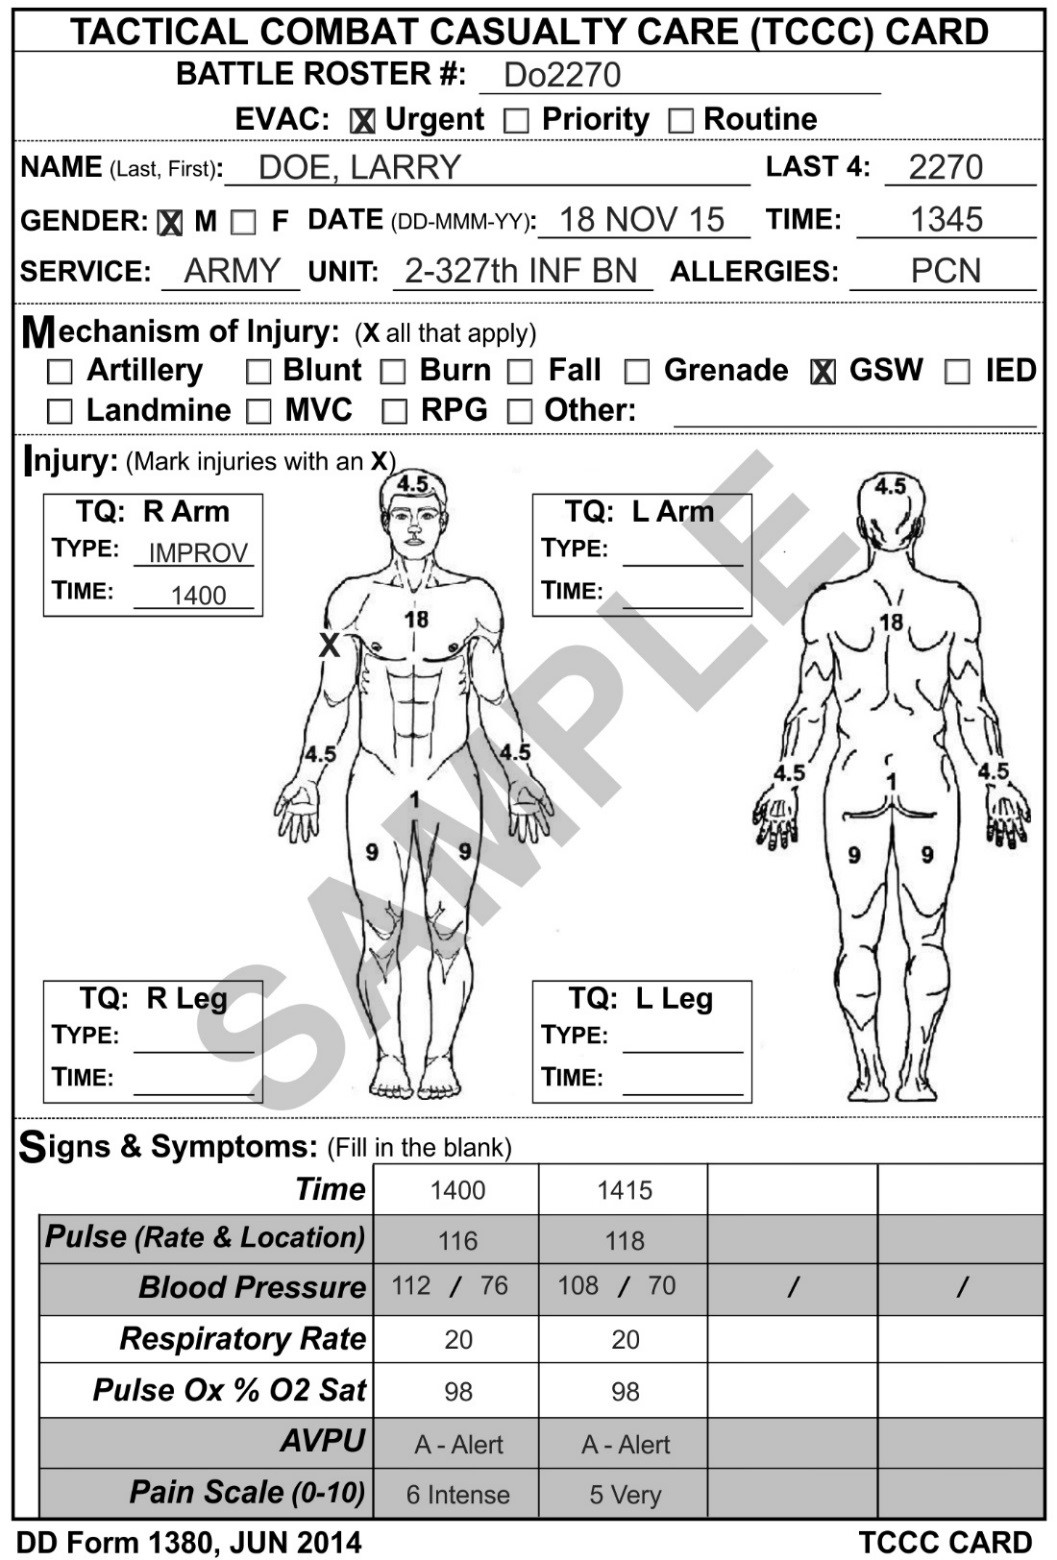 DD Form 1380, Tactical Combat Casualty Care (TCCC) Card